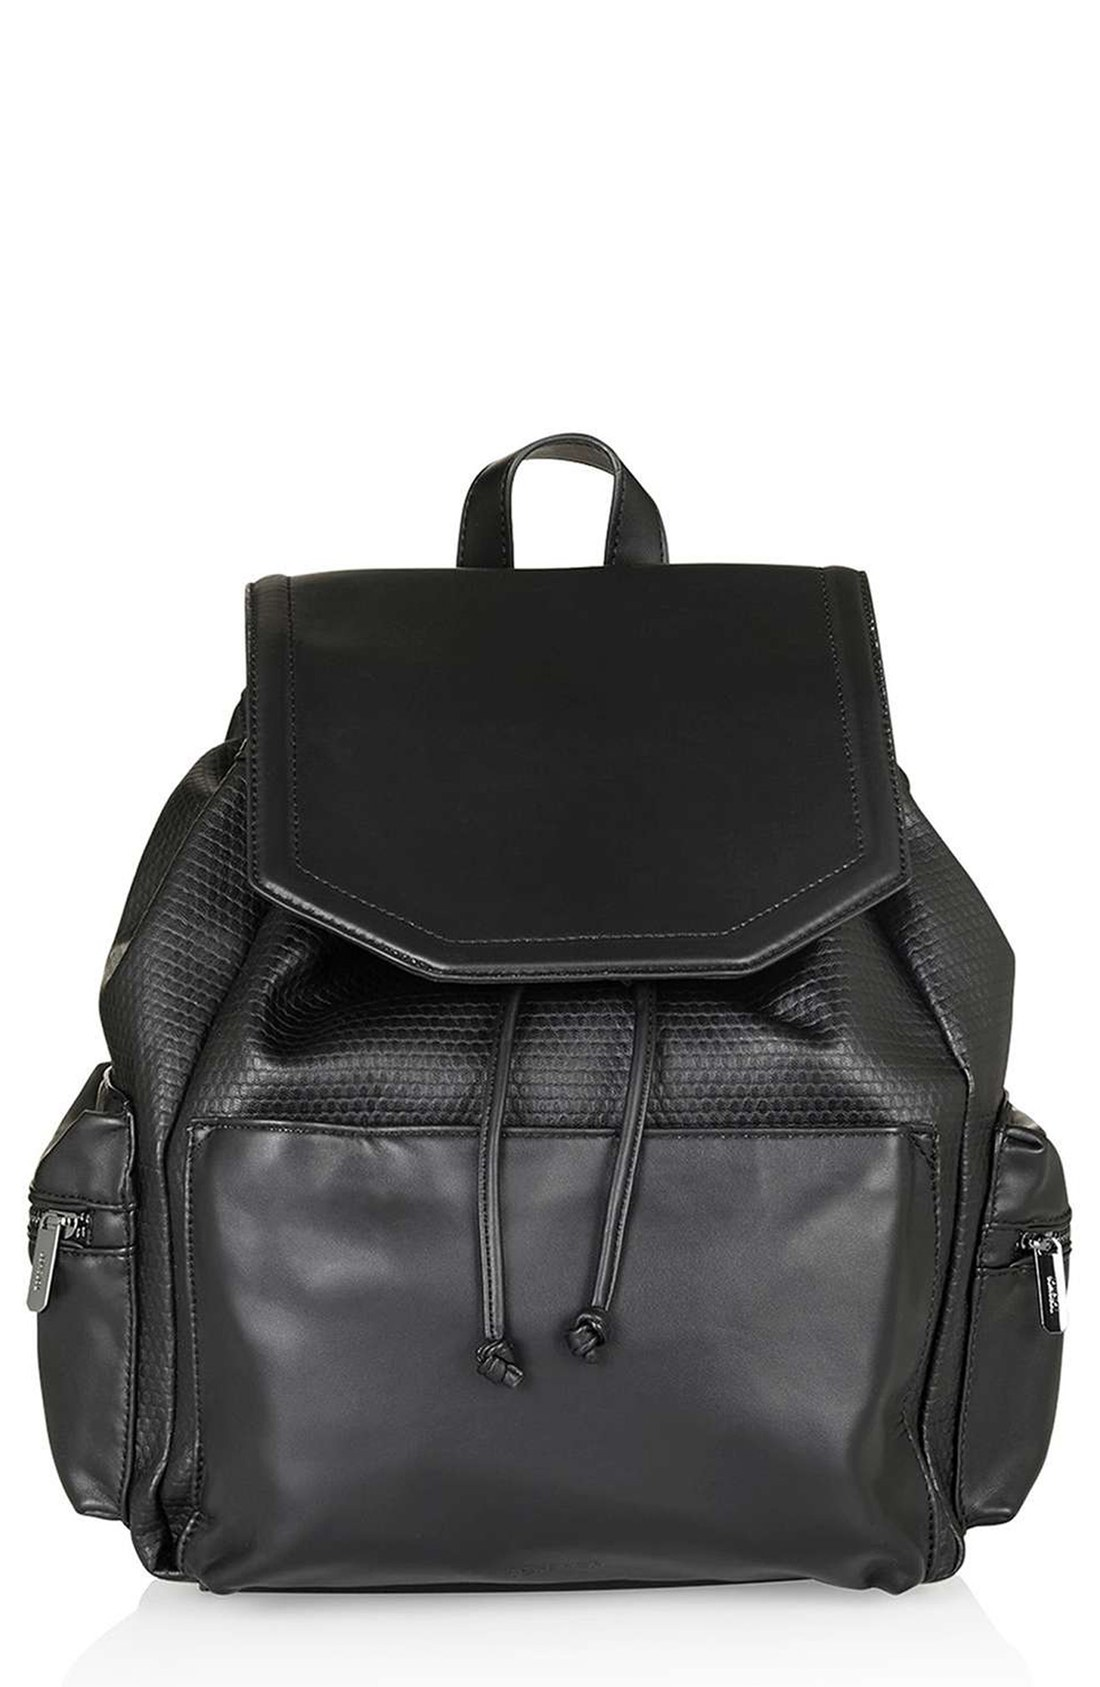 Backpack Black Leather Kuxr7Kvh